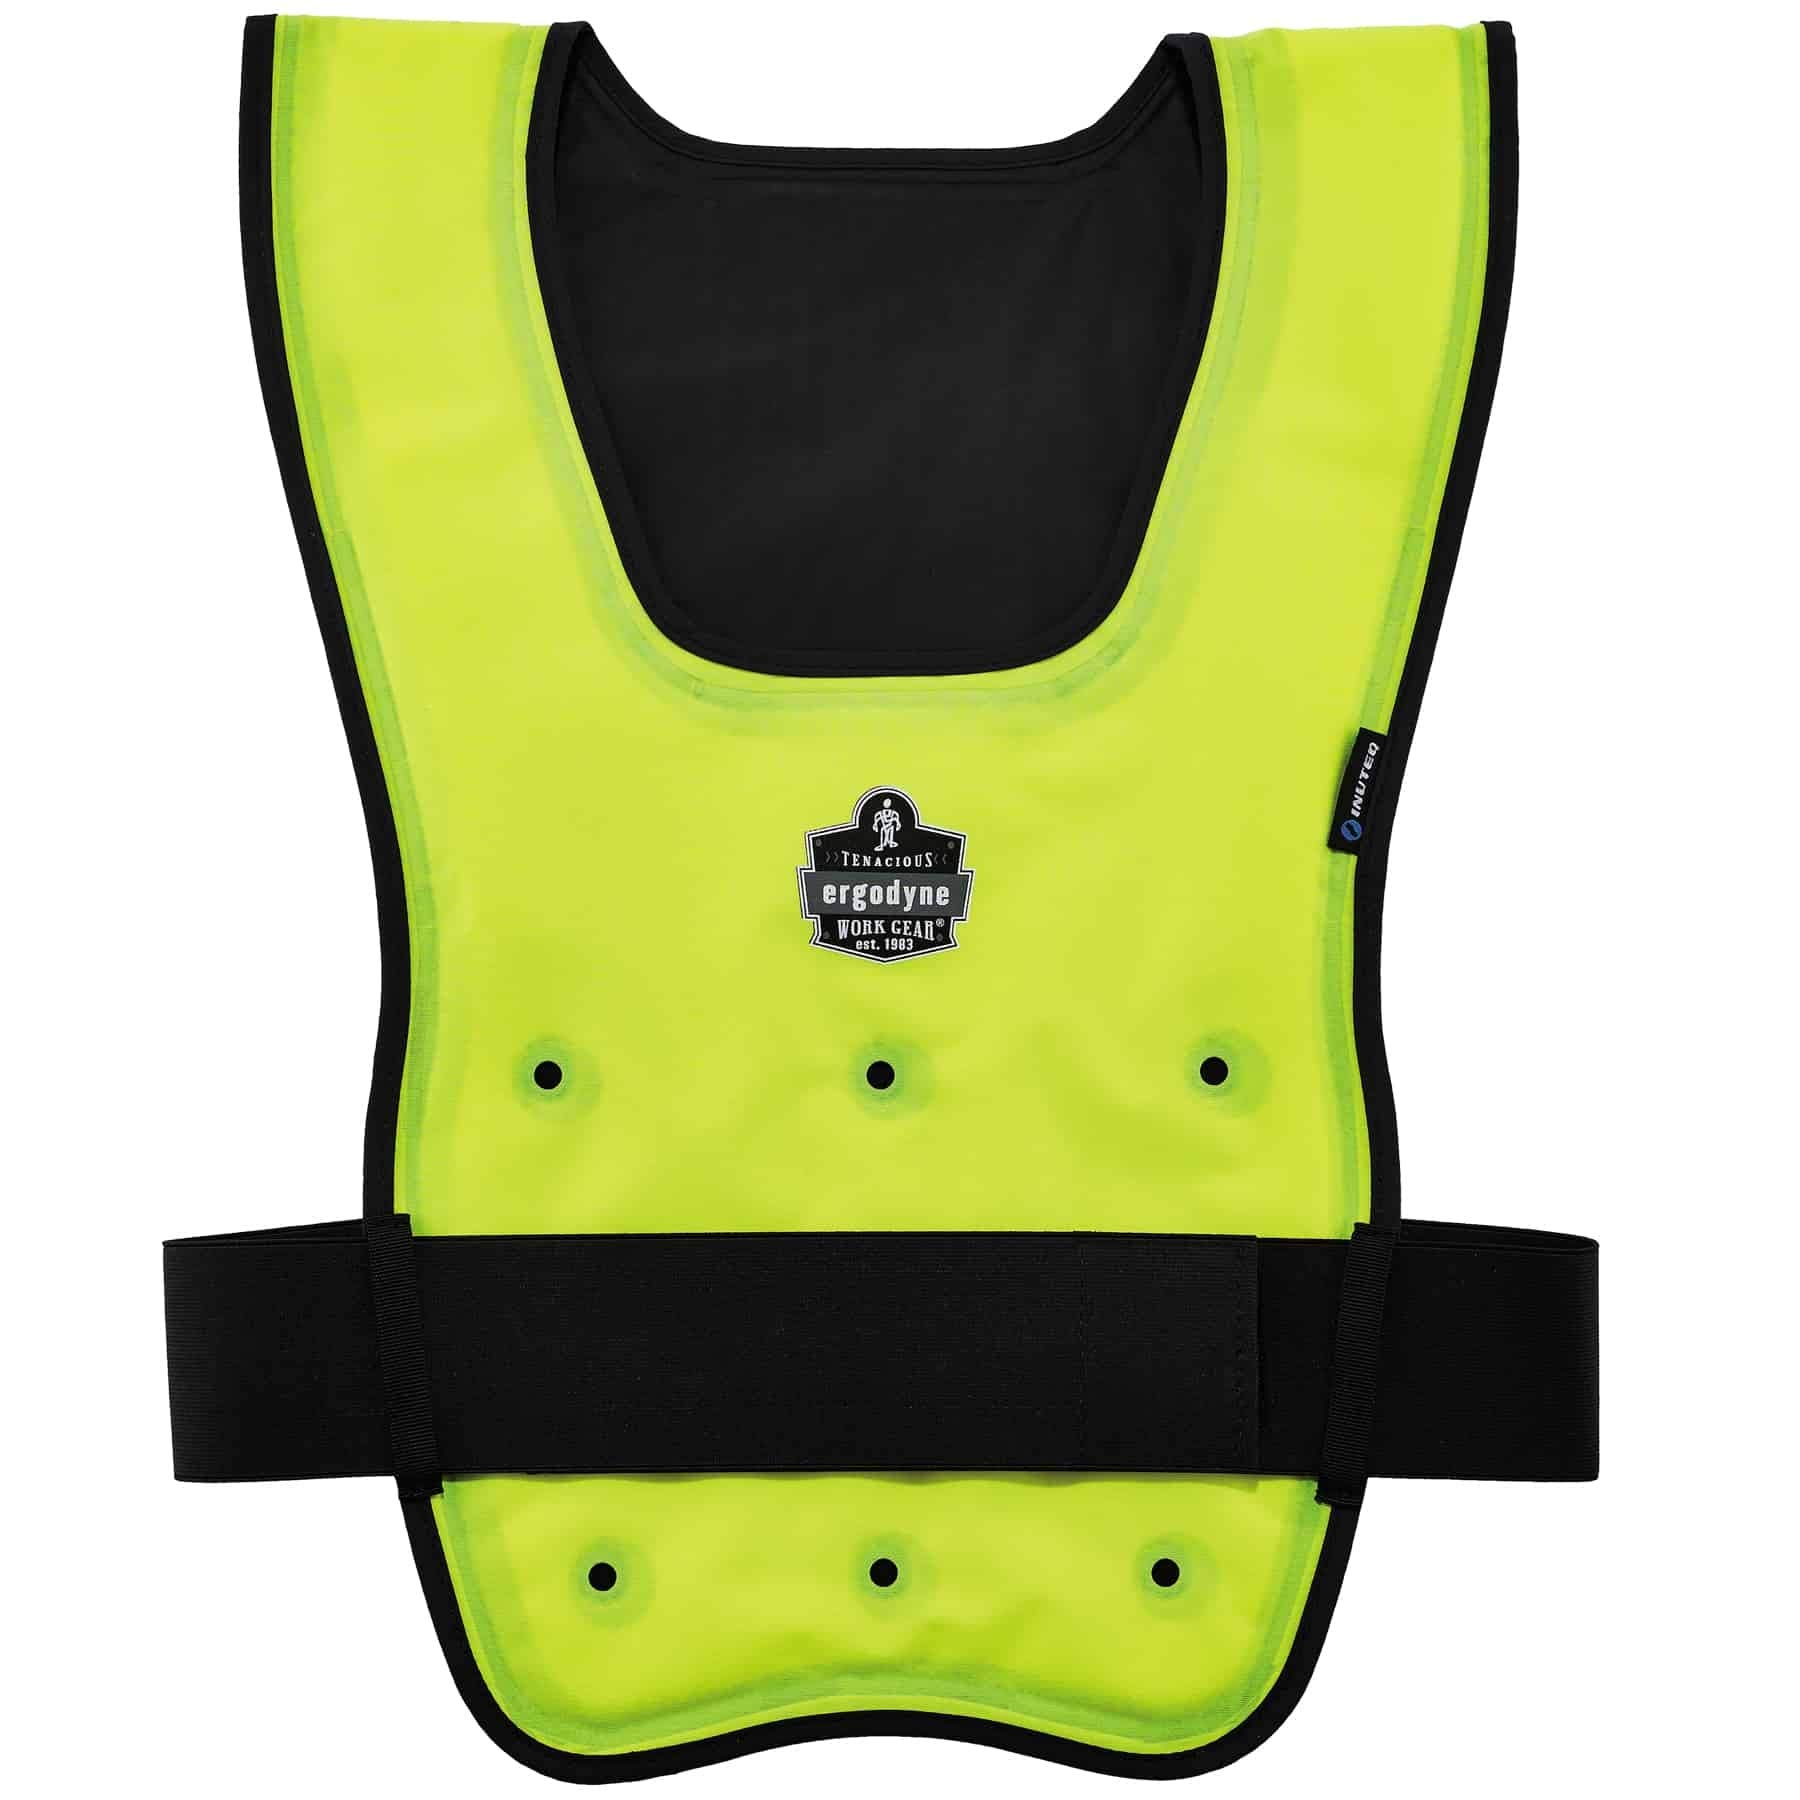 Evaporative Cooling Vest, Wearer Stays Cool and Dry, Breathable Comfort, Pull Over Design, Ergodyne Chill-Its 6687